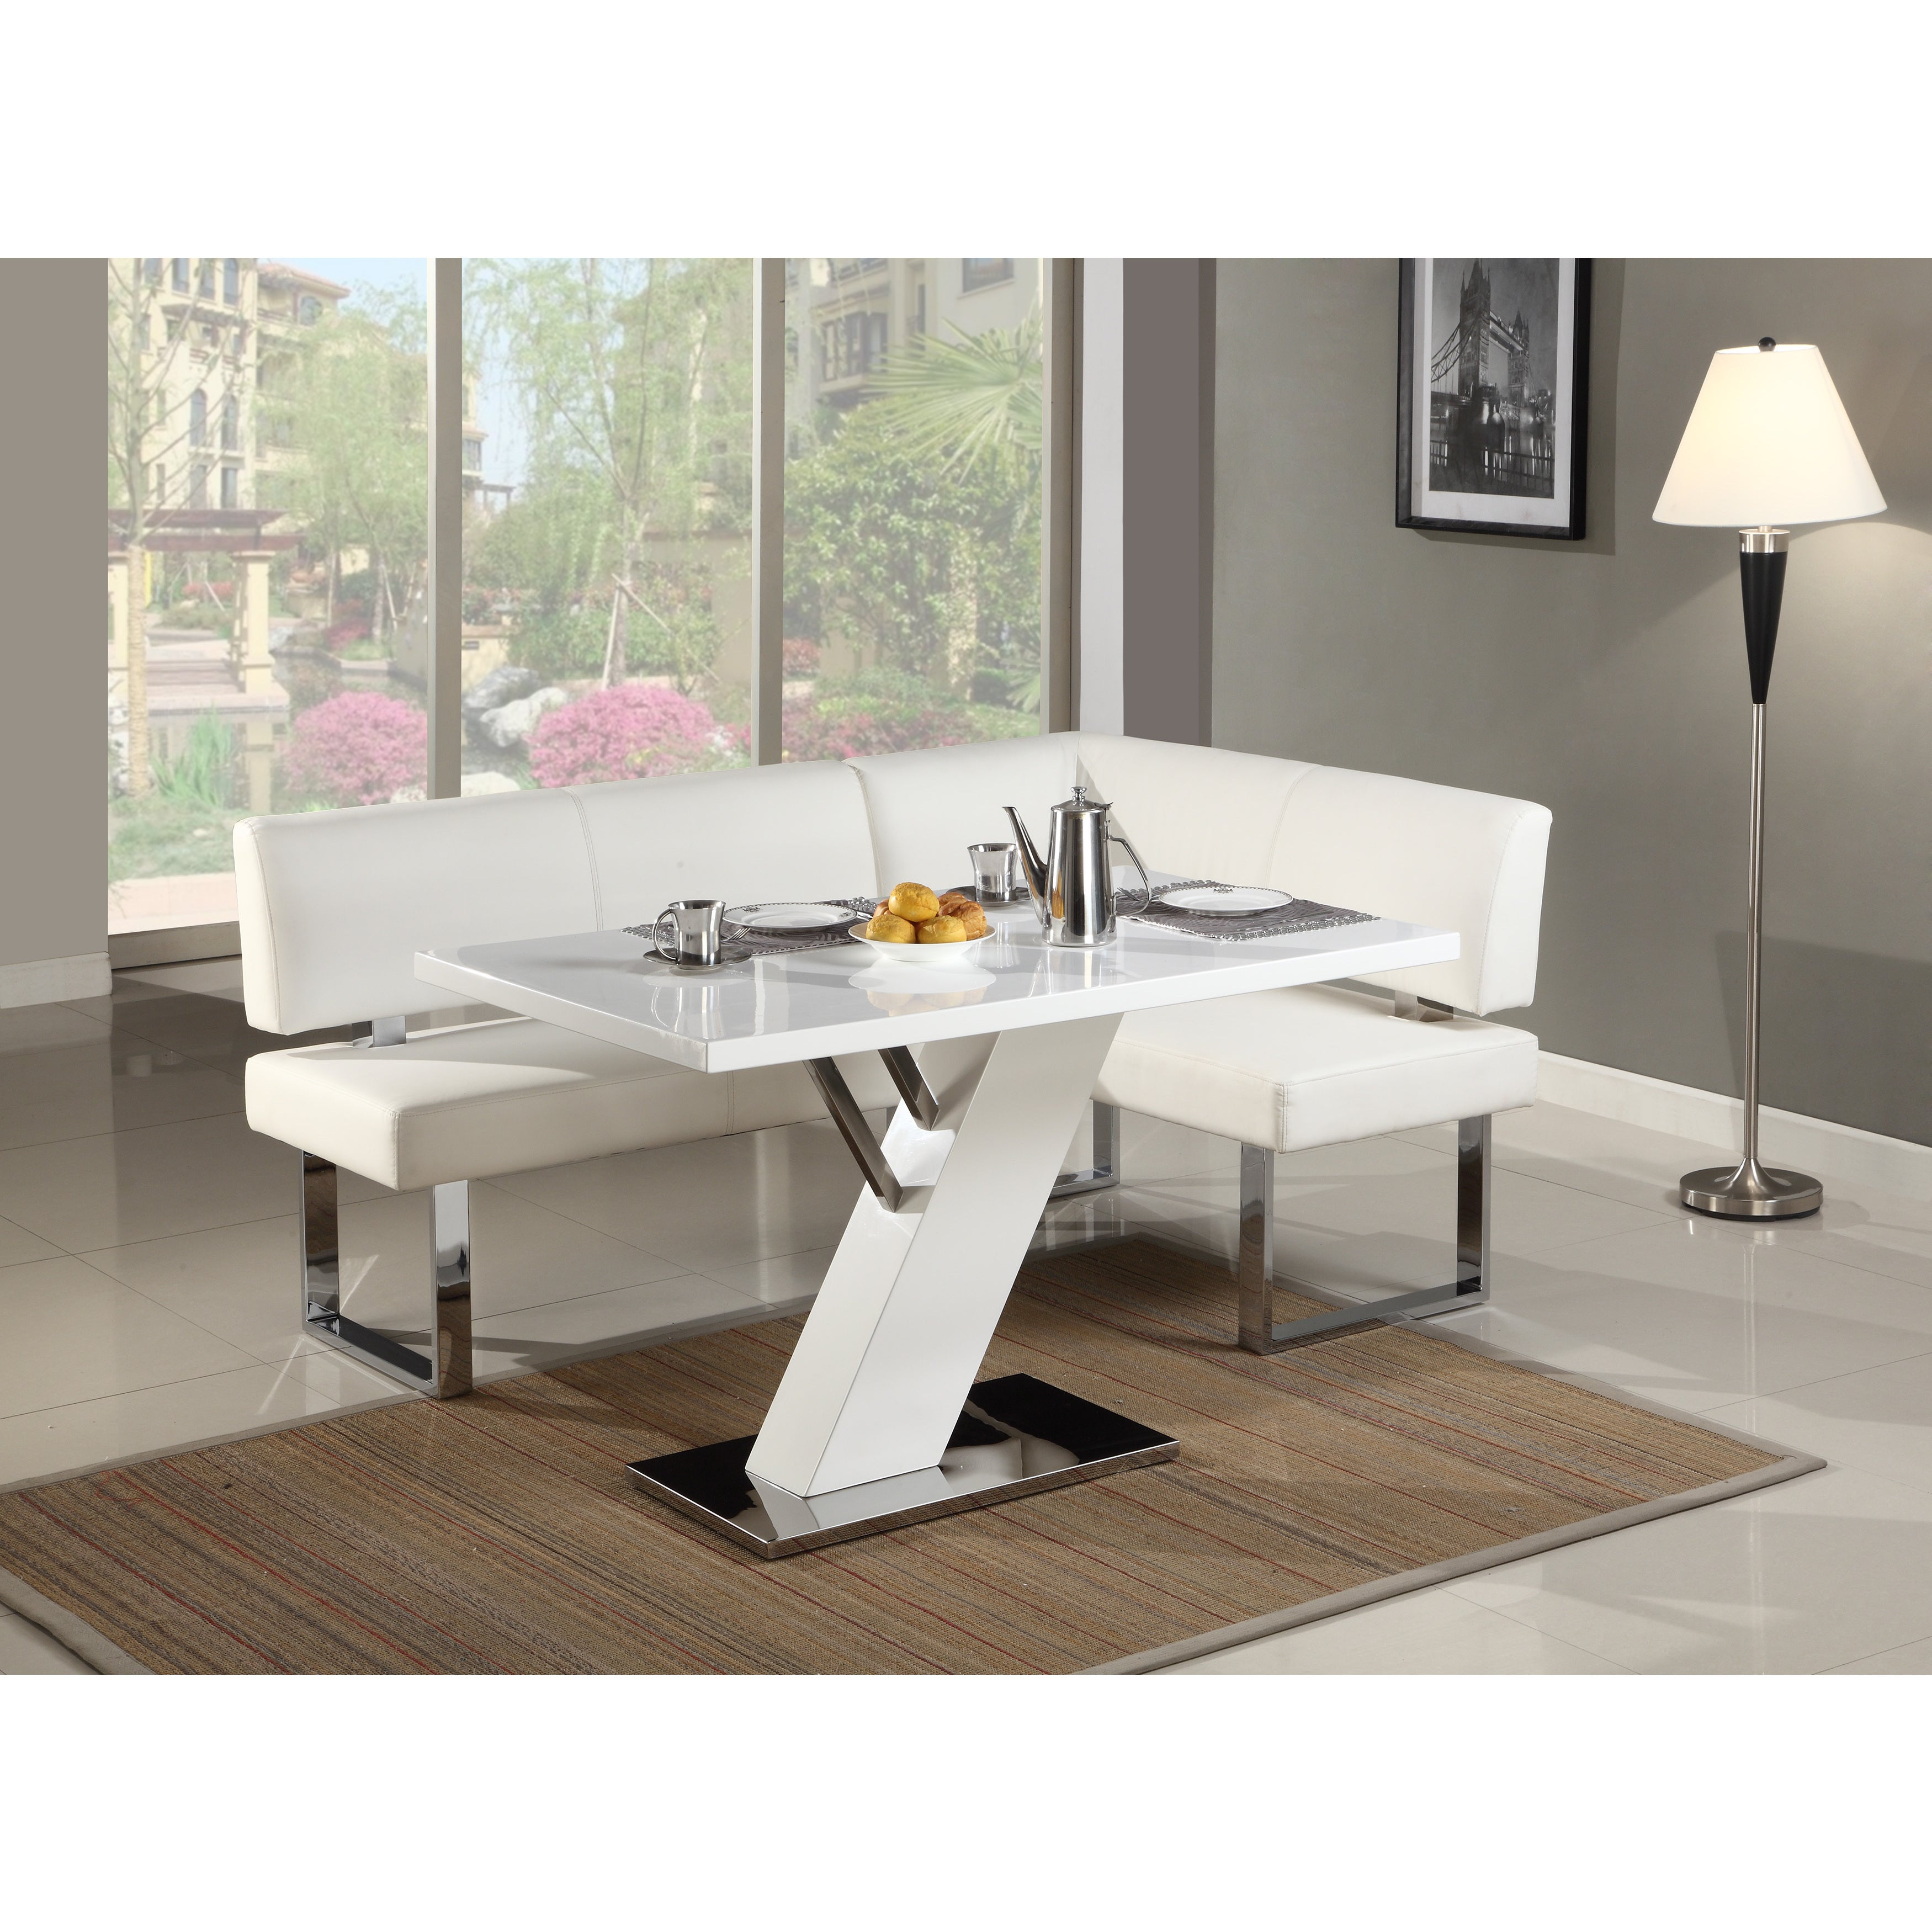 Somette Leah Gloss White Chrome Dining Table